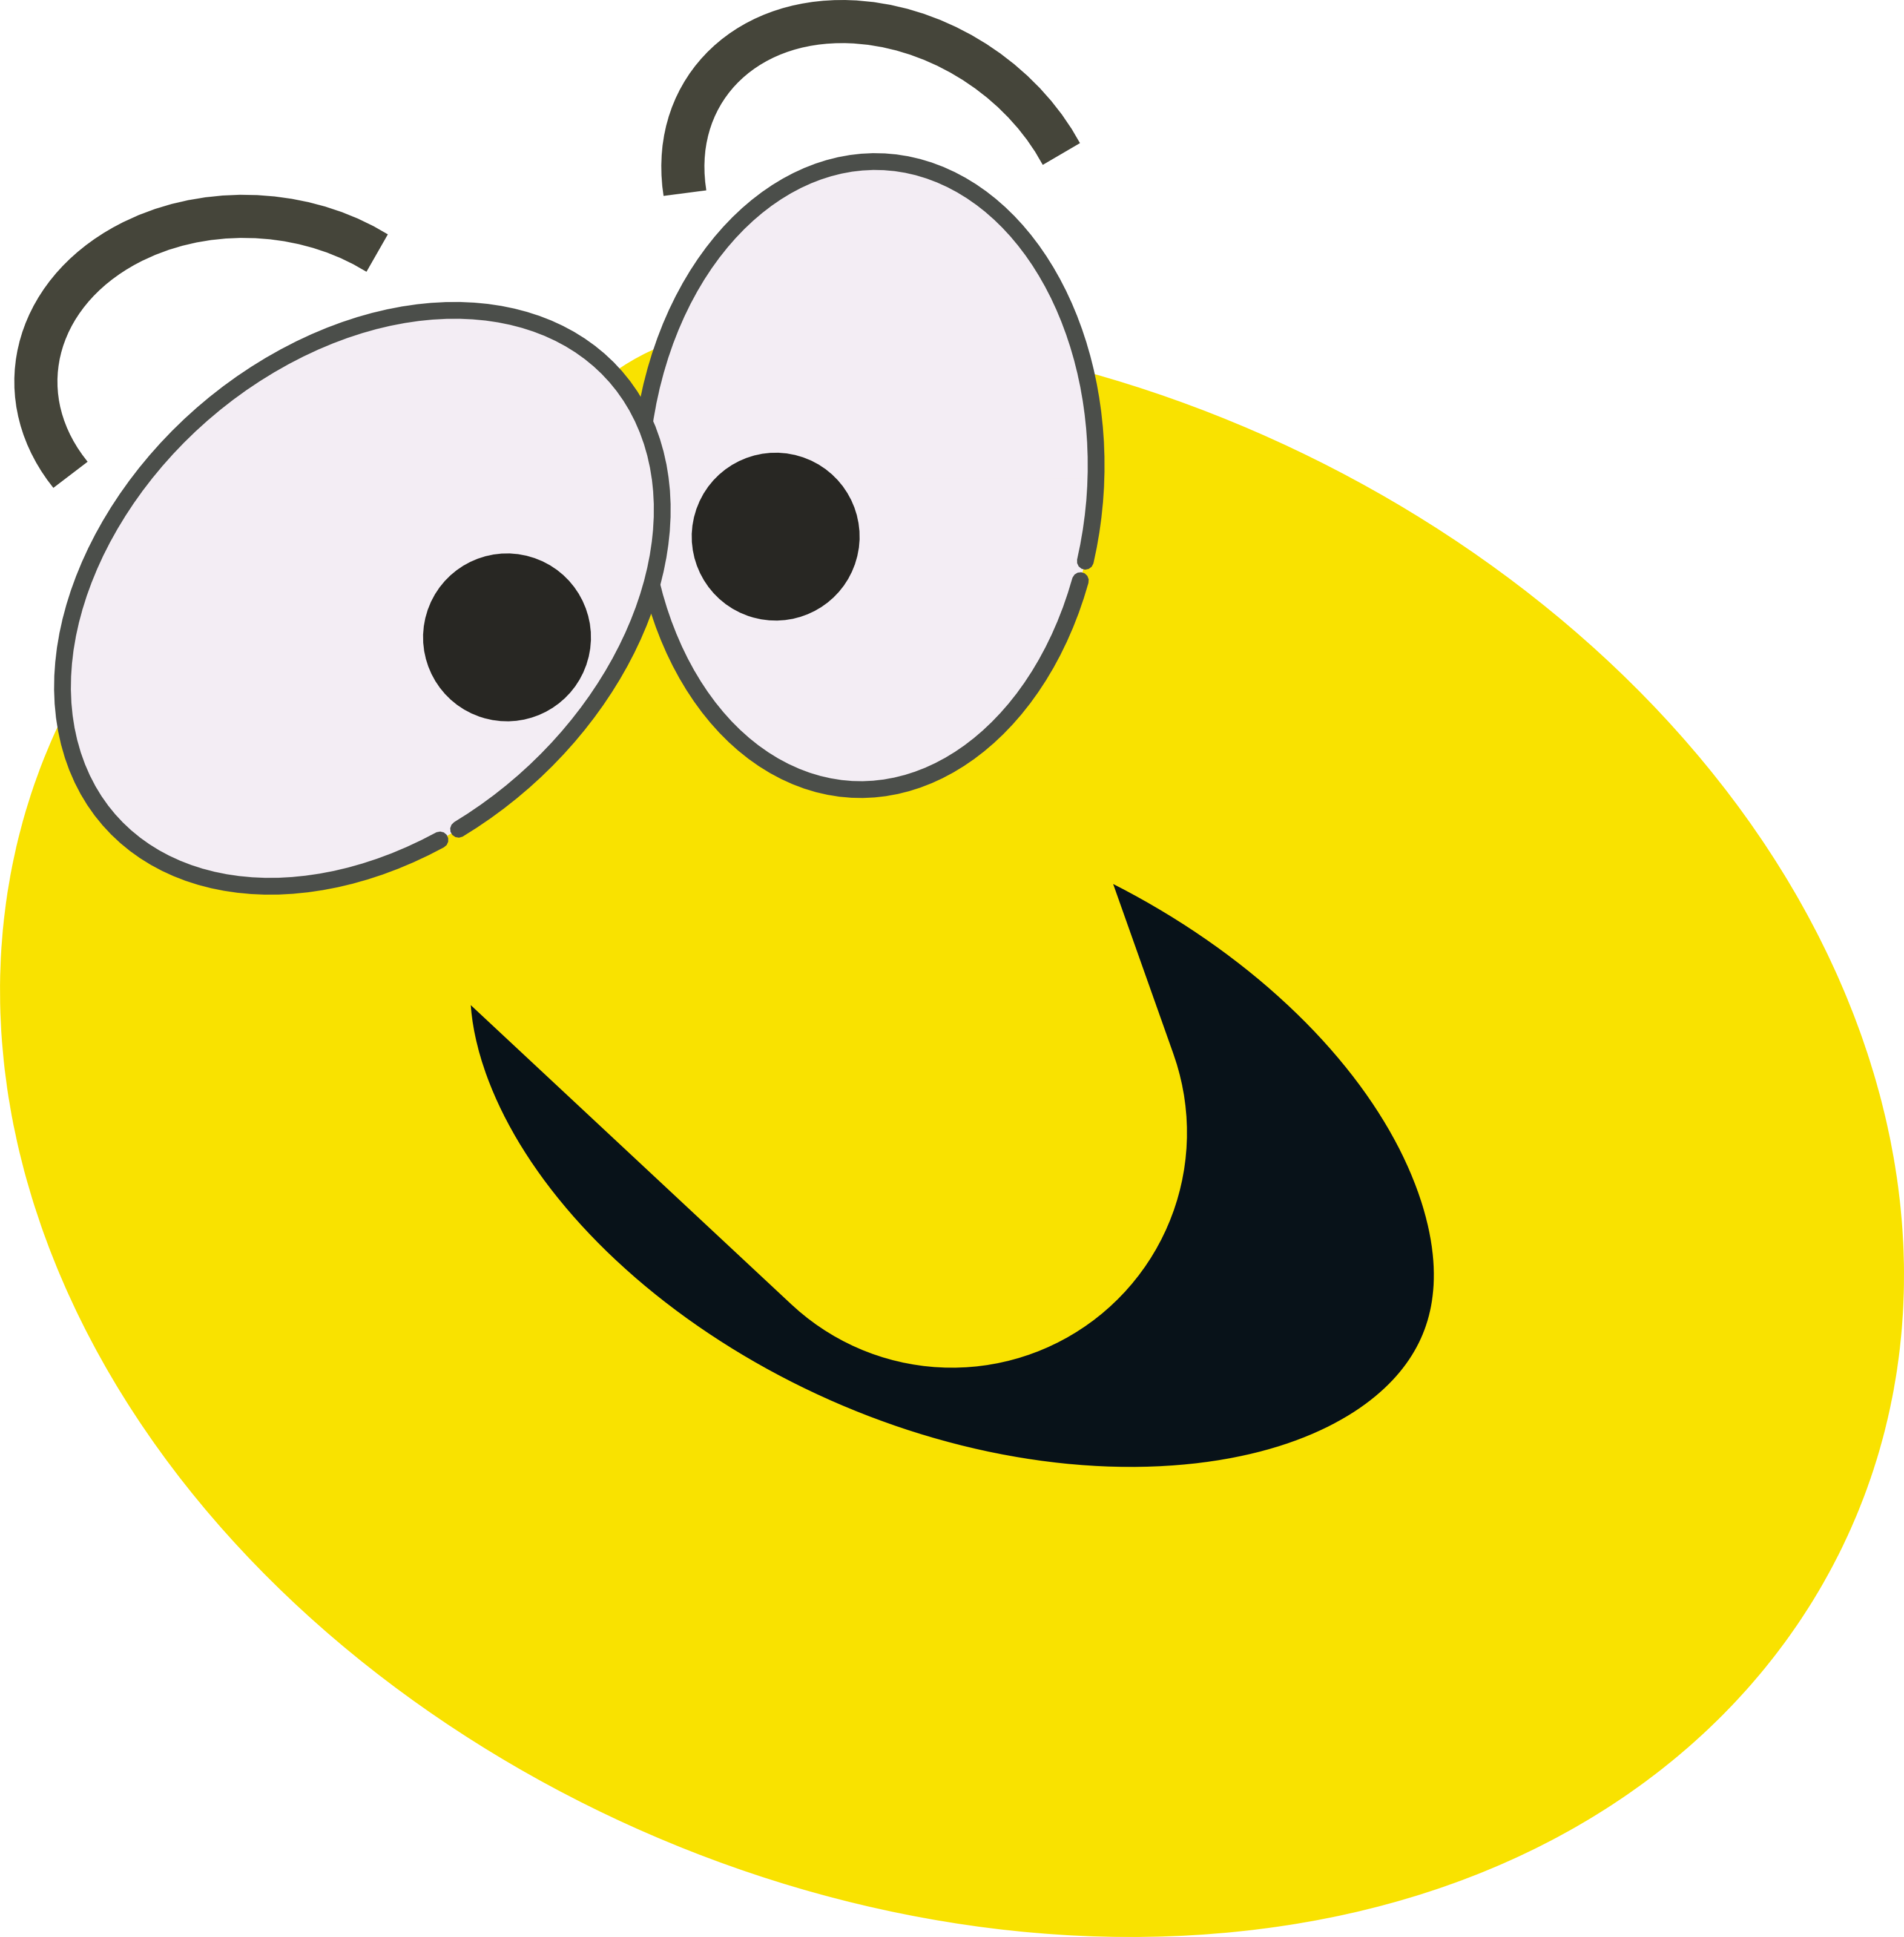 Smiley face happy face smiley happy smiling clip art at vector 4